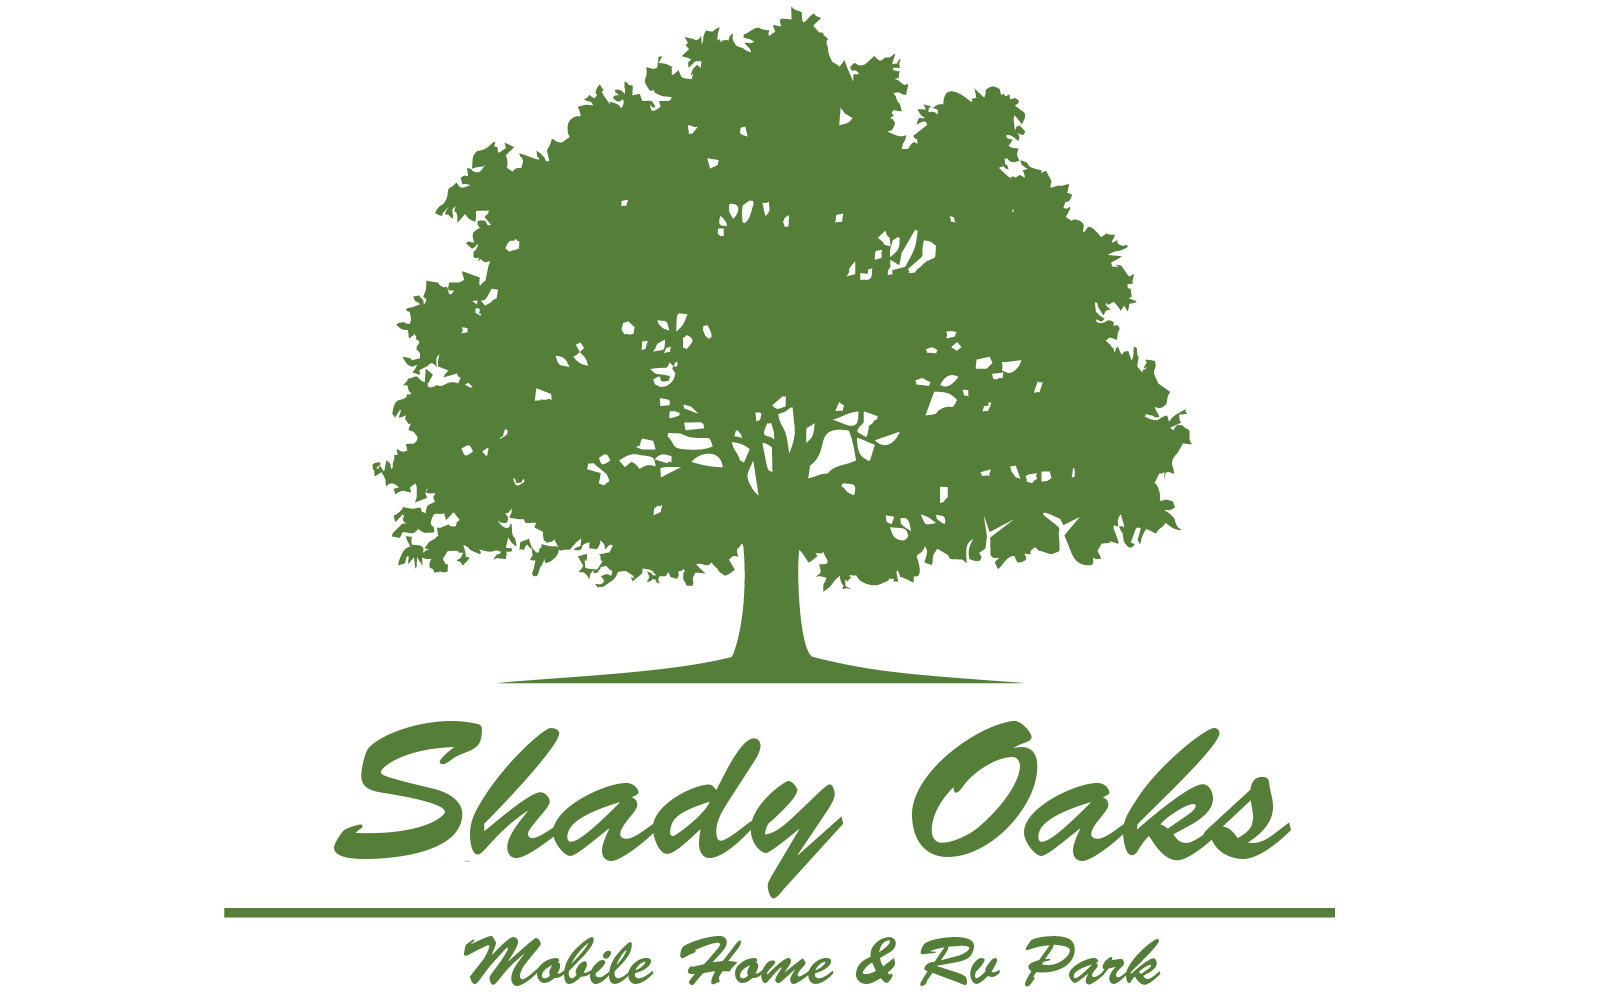 Shady Oaks Mobile Home RV Park